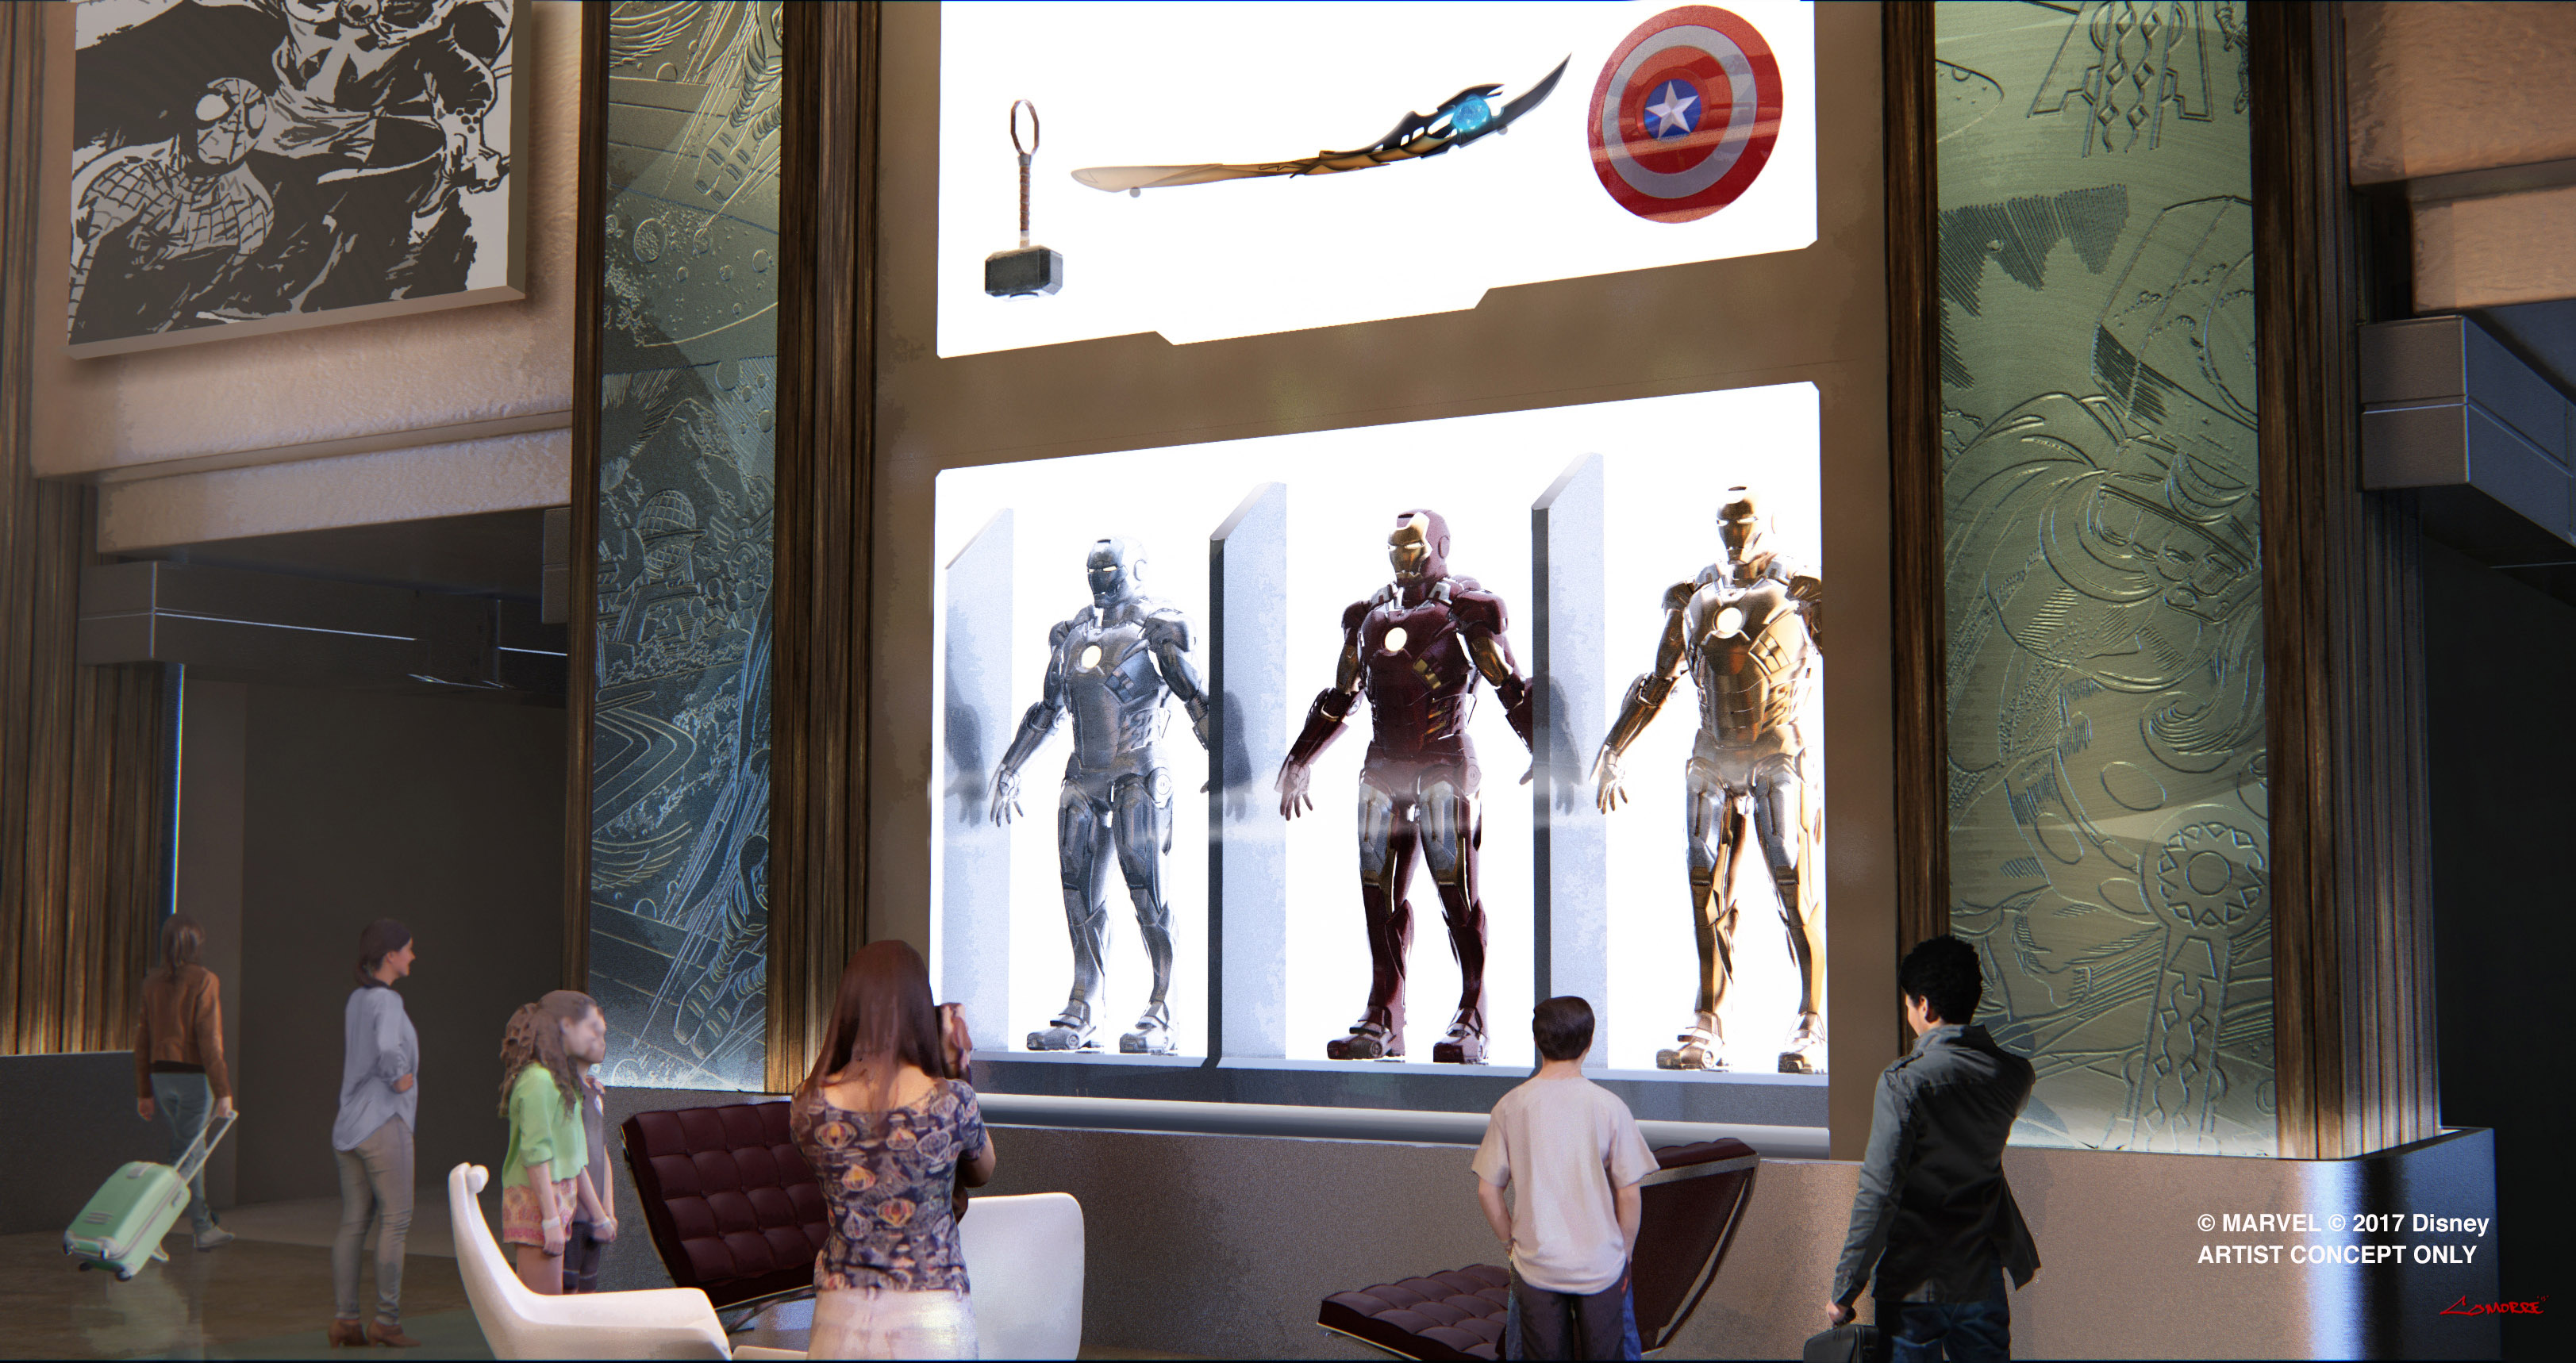 [Officiel] Disney's Hotel New York rethématisé - The Art of Marvel (fermeture en janvier 2019 jusqu'à 2020) - Page 3 Image_DLP_Hotel-New-York-Lobby